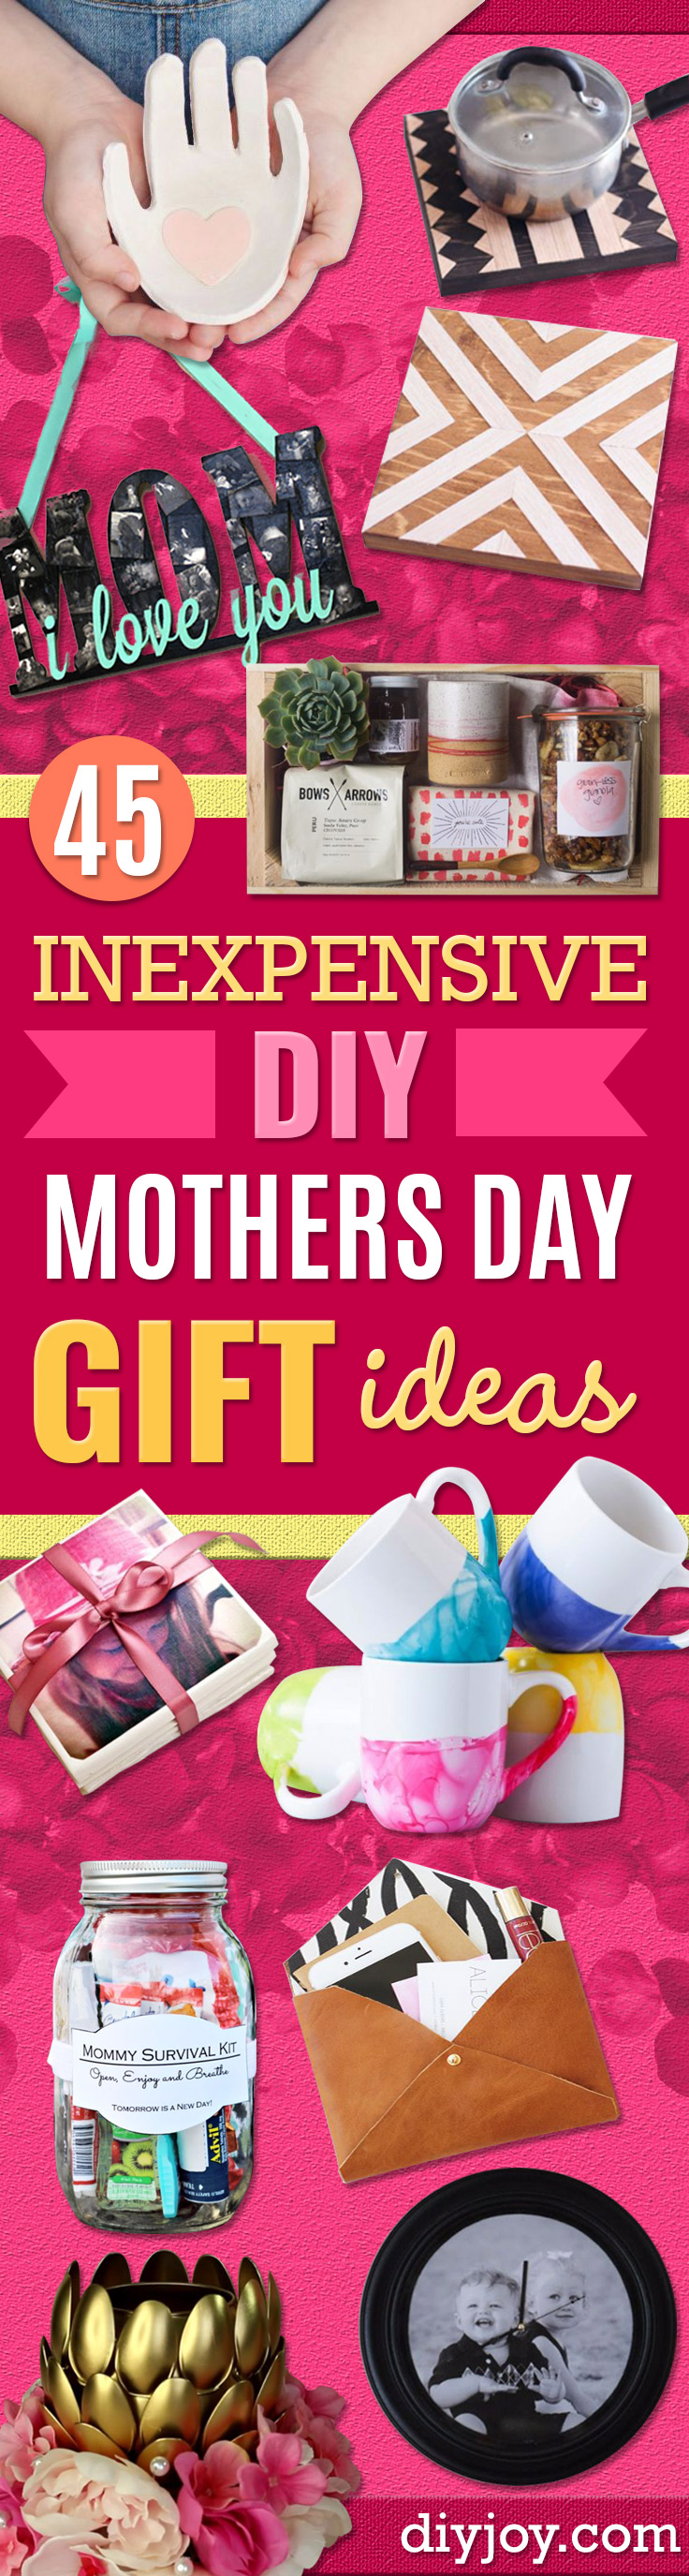 DIY Mothers Day Gift Ideas - Homemade Gifts for Moms - Crafts and Do It Yourself Home Decor, Accessories and Fashion To Make For Mom - Mothers Love Handmade Presents on Mother's Day - DIY Projects and Crafts by DIY JOY